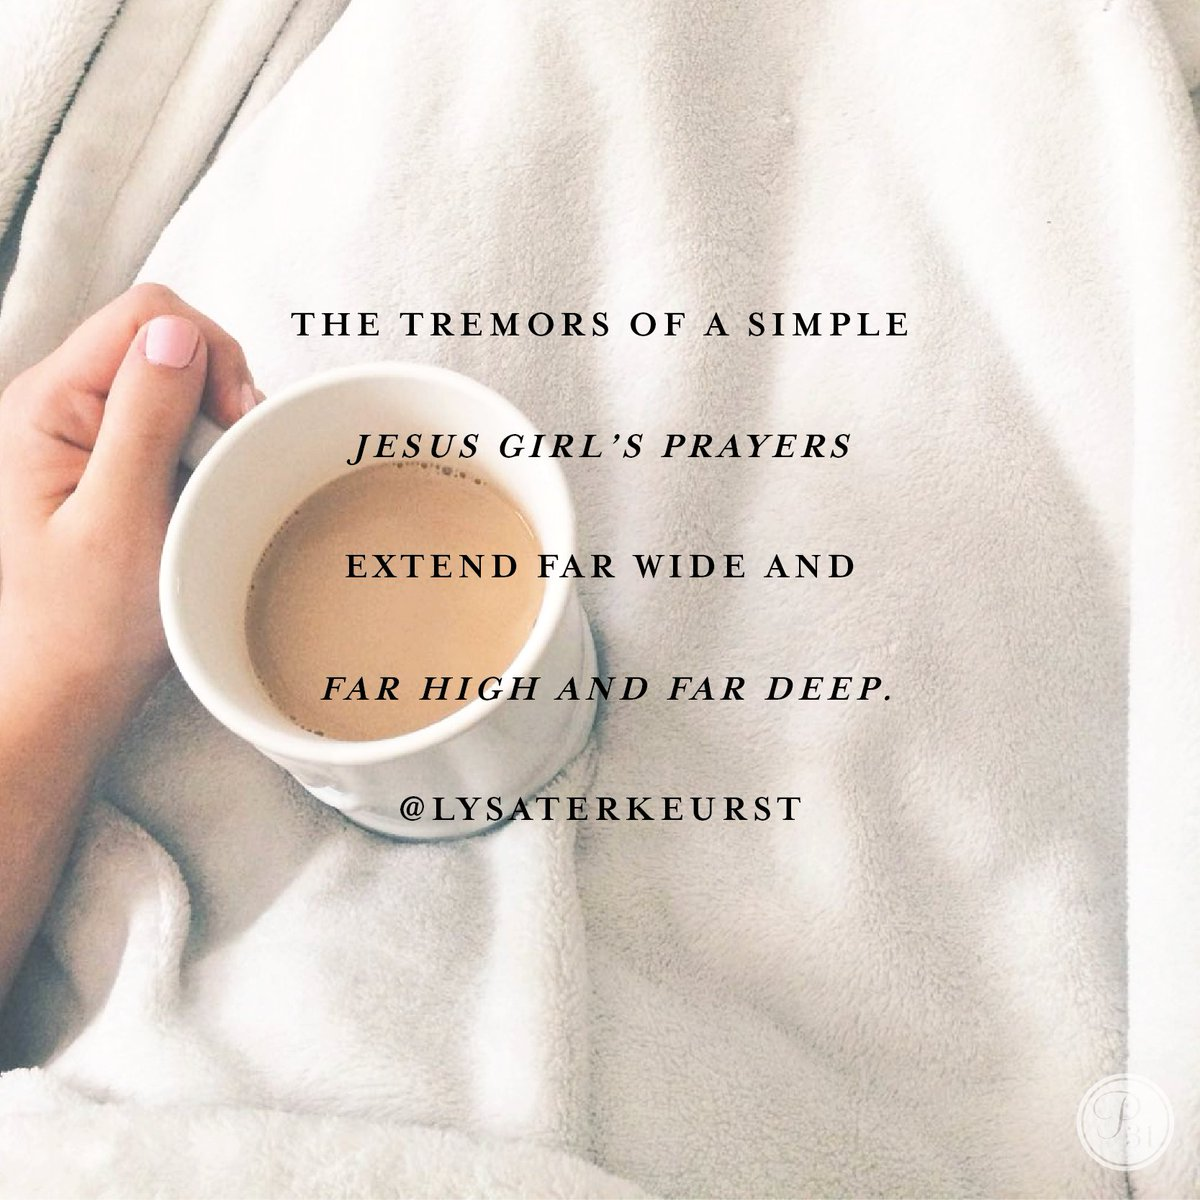 Lysa Terkeurst On Twitter The Tremors Of A Simple Jesus Girls